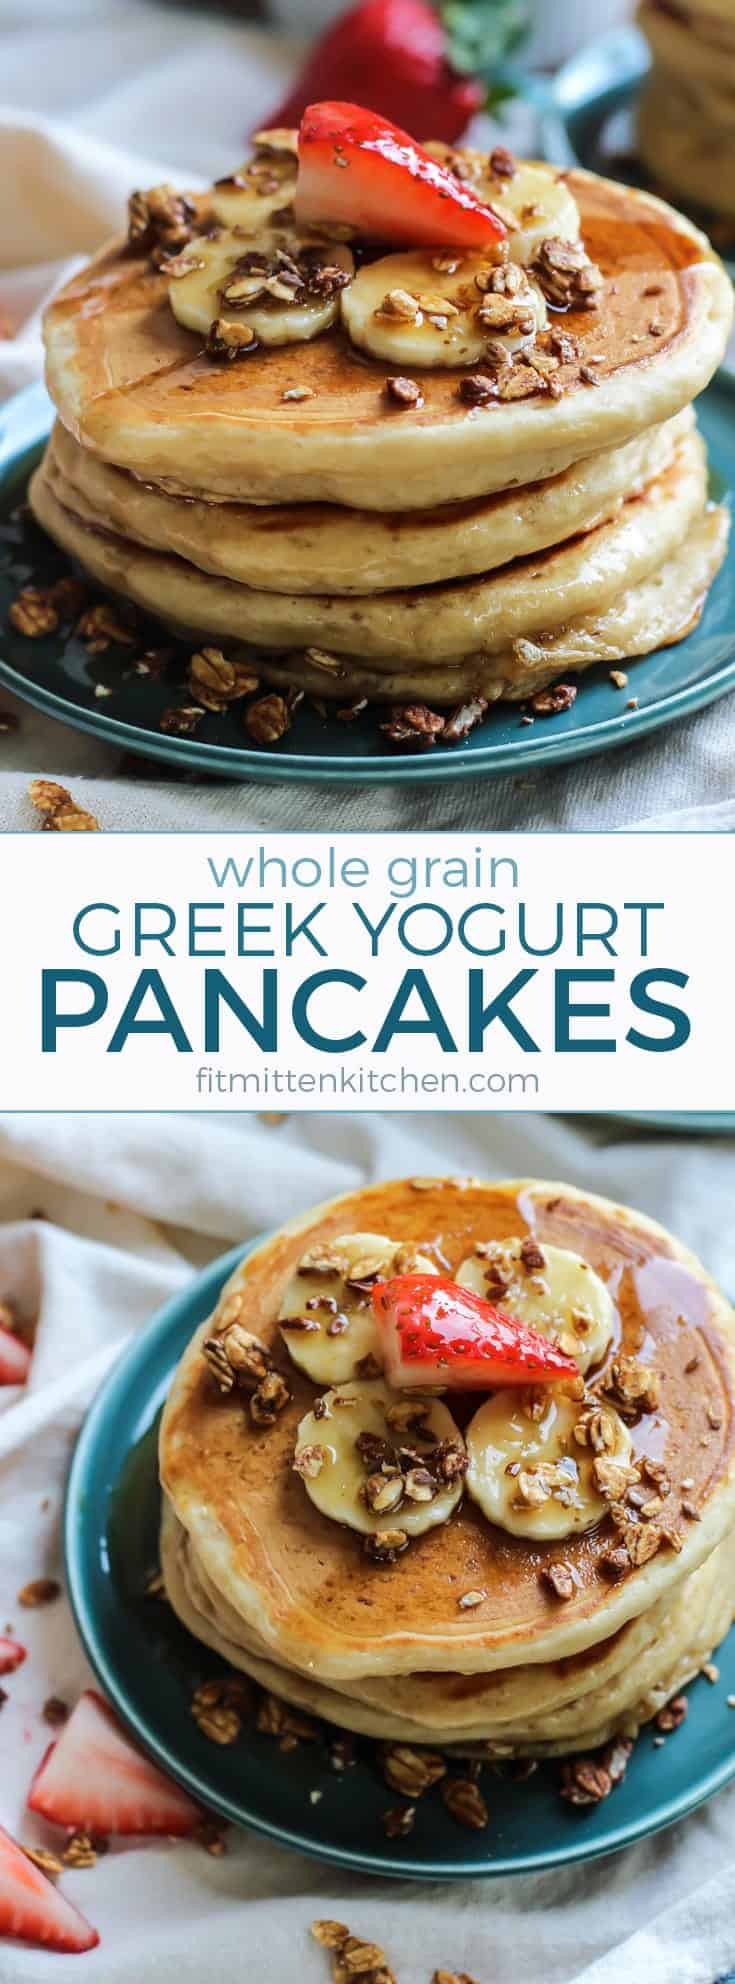 These Whole Grain Greek Yogurt Pancakes are easy, simple and just what your weekend needs! Make a big batch to freeze and you can enjoy pancakes all week long. Simple recipe with pantry staples!!